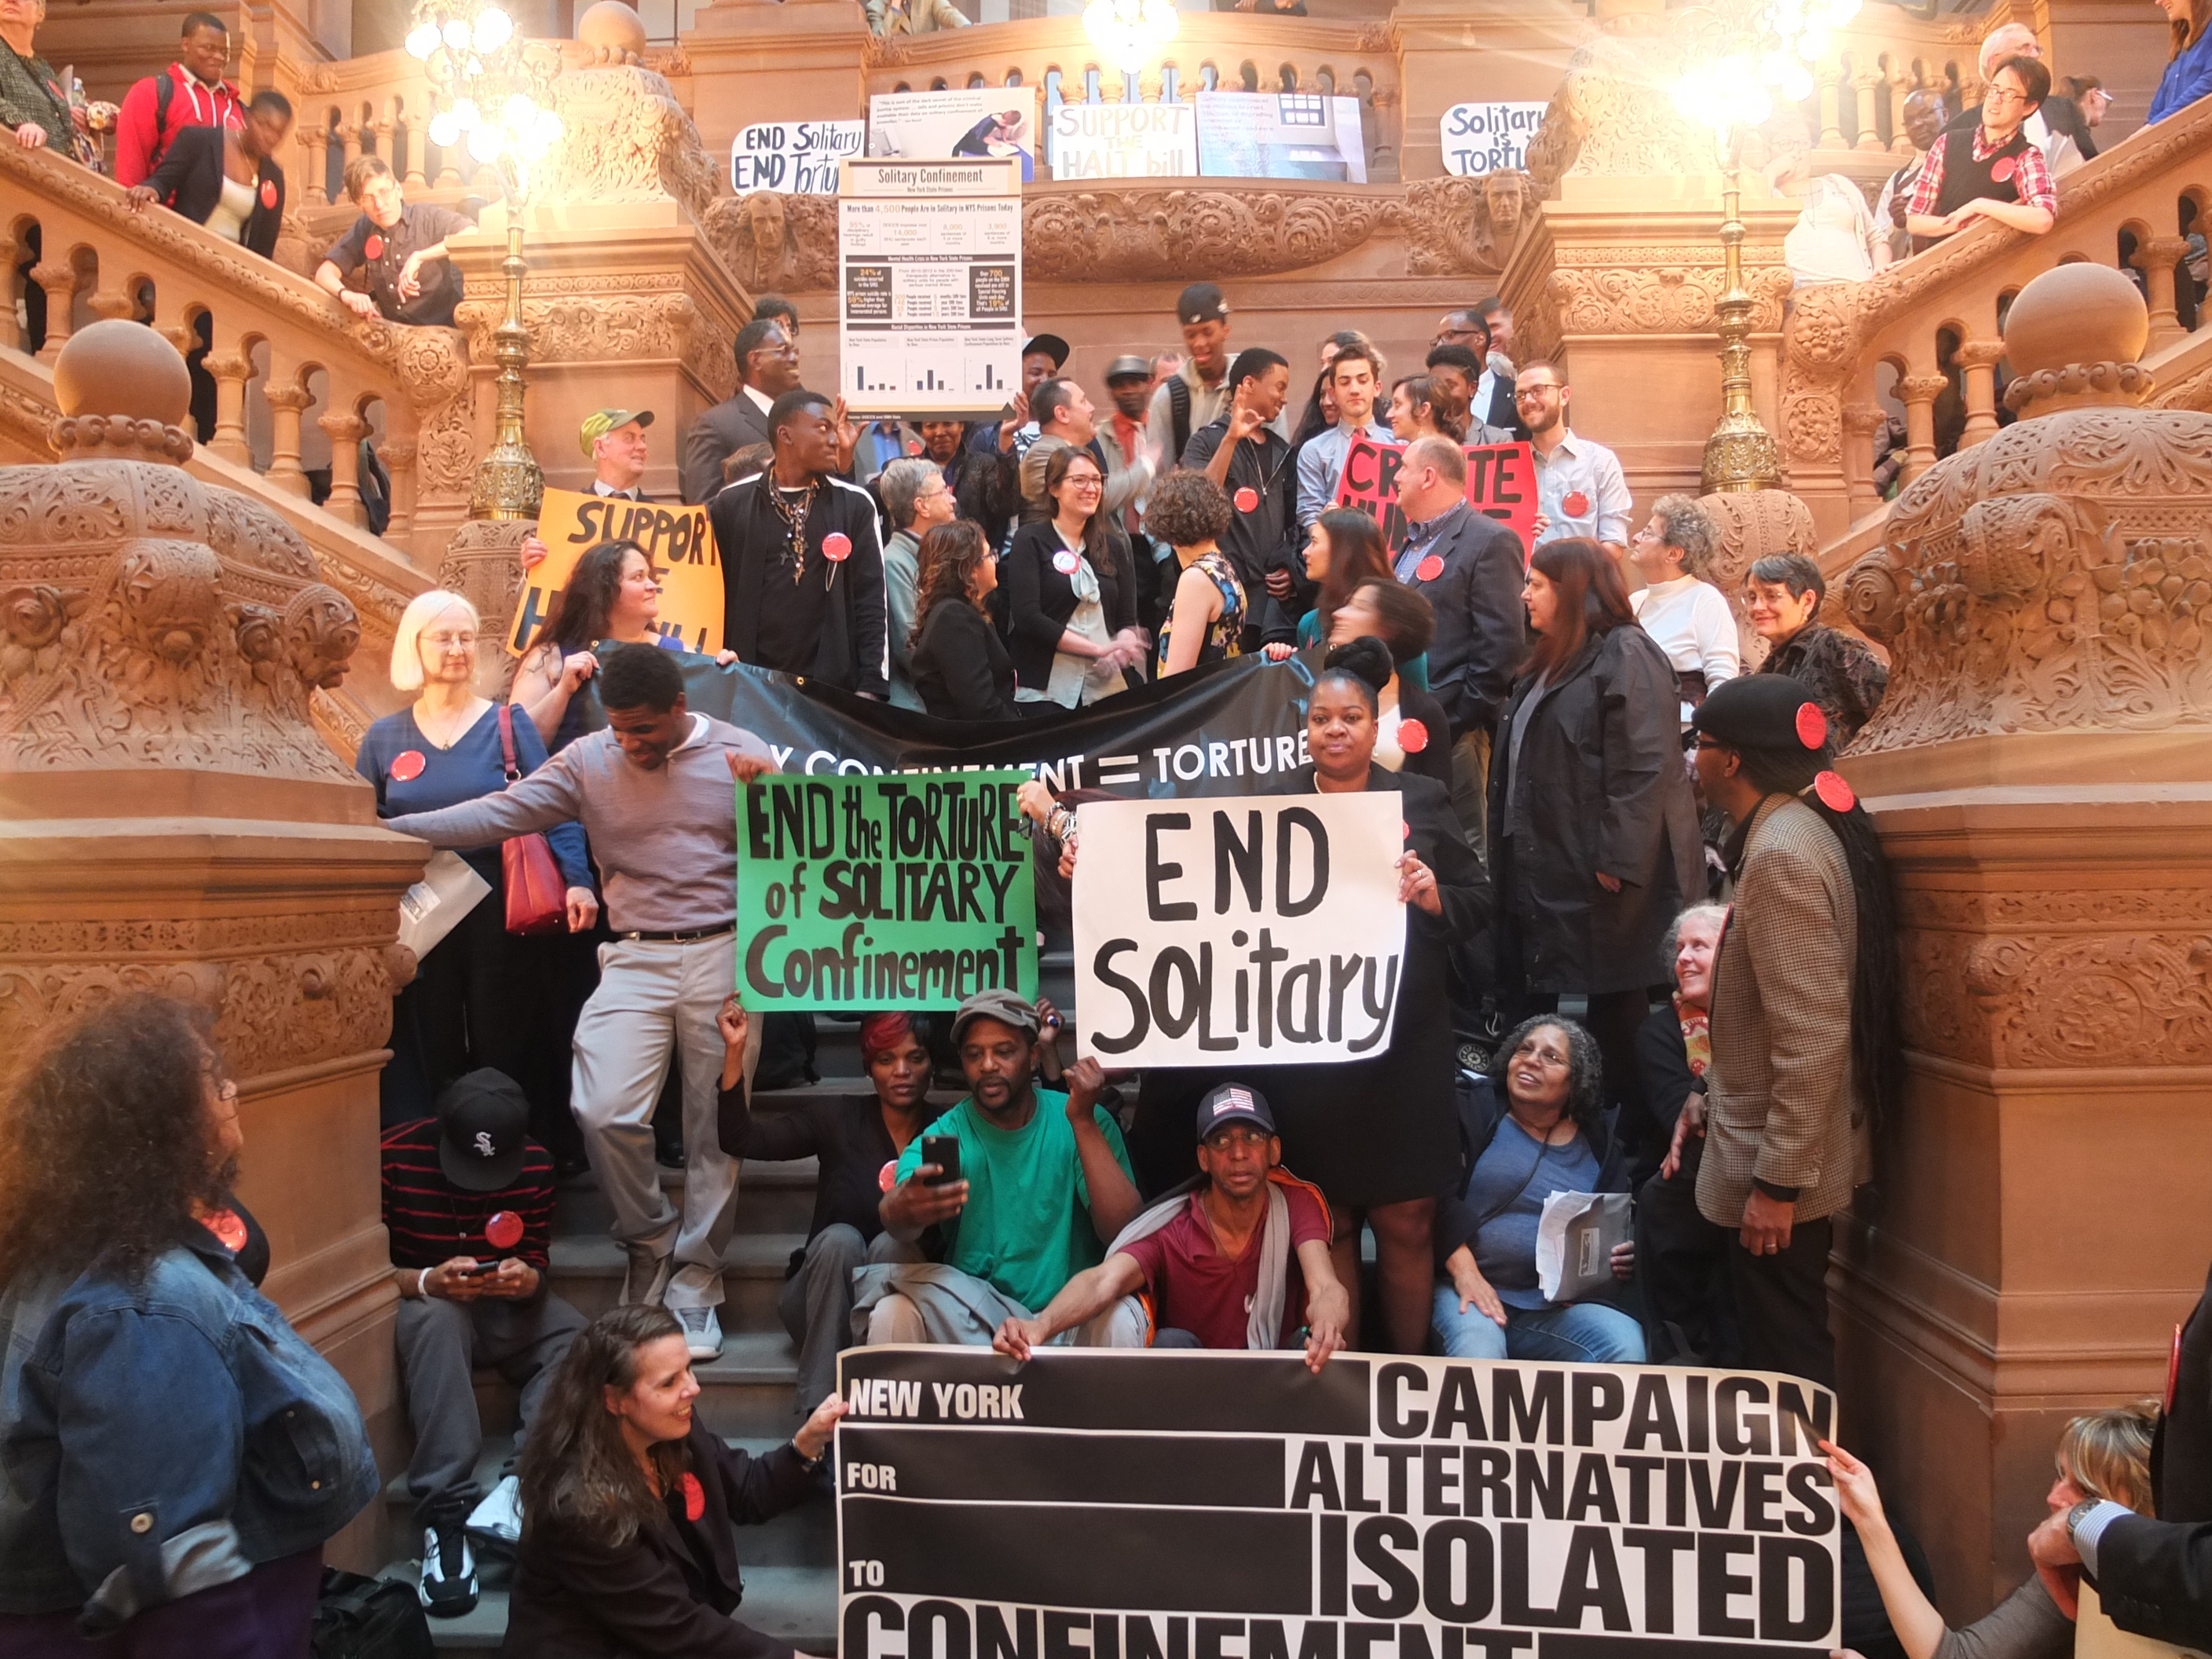 Activists rally in the New York State Capitol after a day of lobbying for the HALT Solitary Confinement Act.